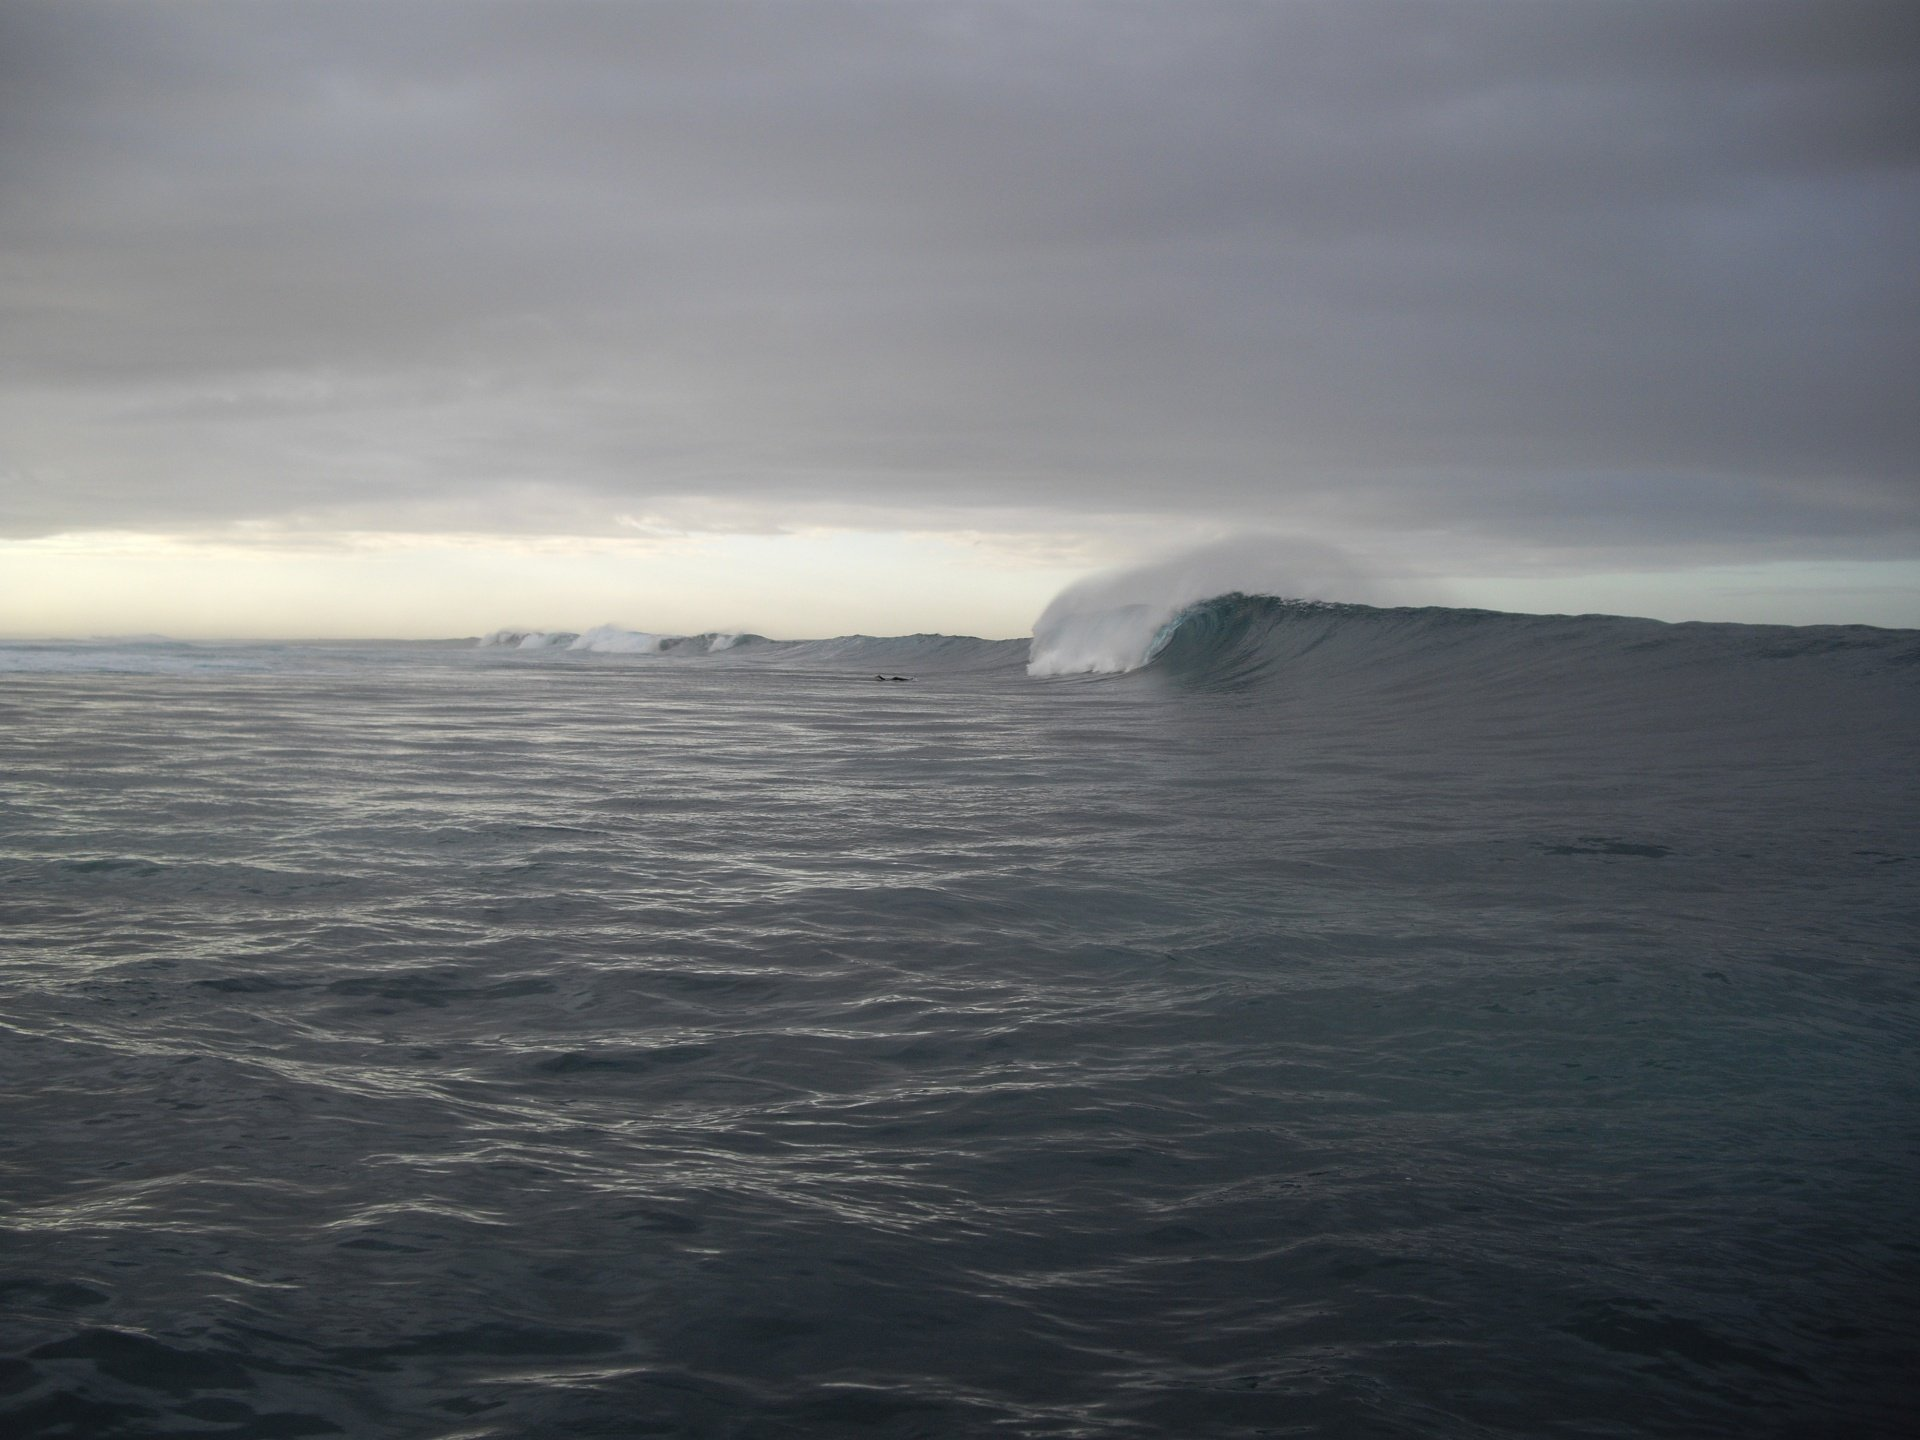 spike's photo of Strickland Bay